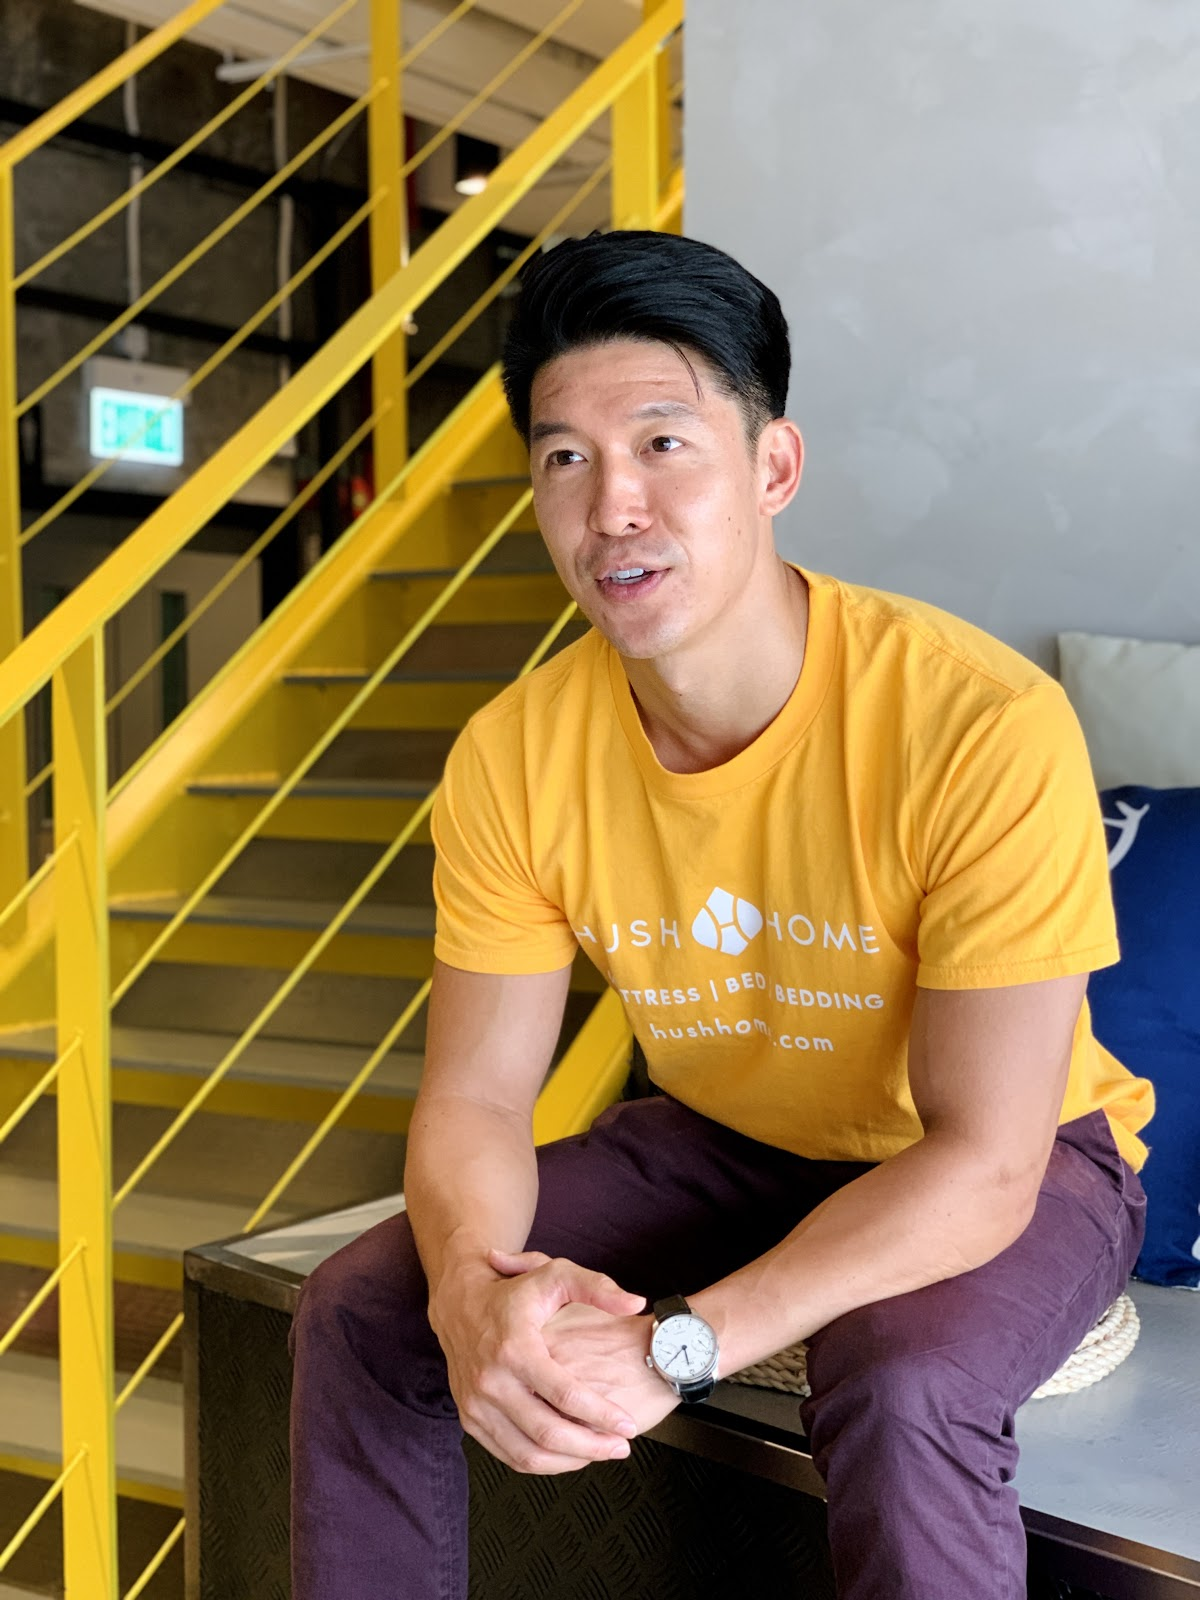 Portrait of Rick Chen during his interview at the Garage Sheung Wan space